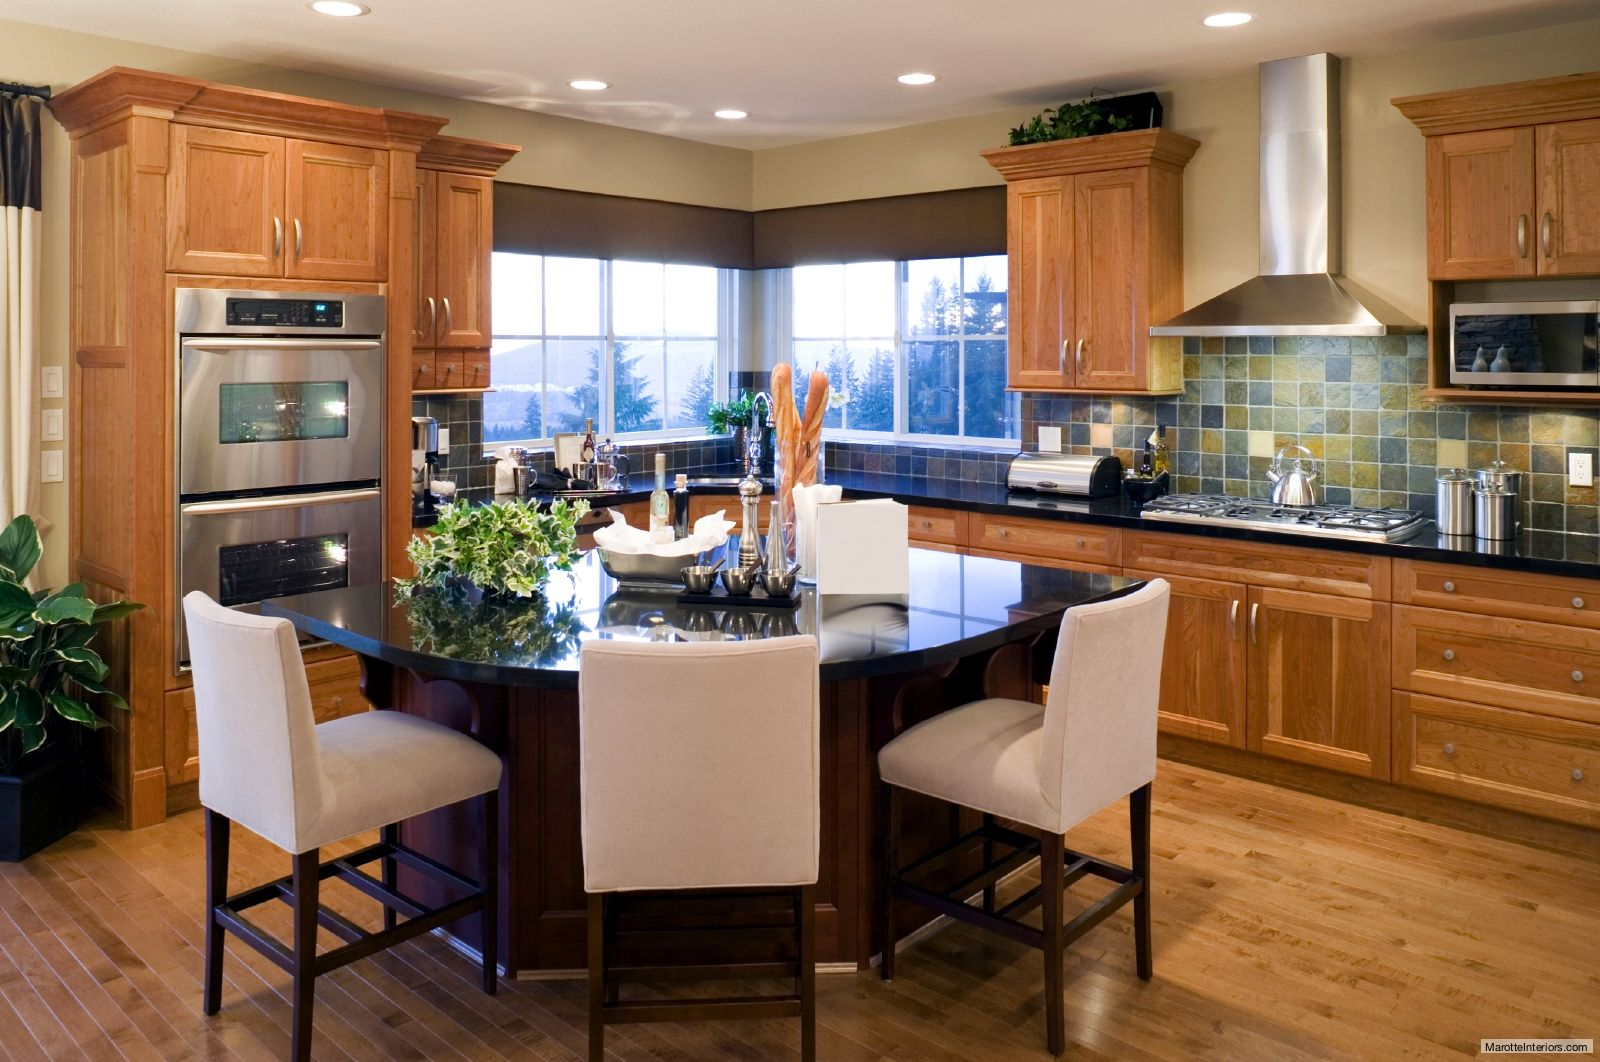 traditional arts crafts kitchen remodeled by marotte interiors kitchen design open interior on kitchen interior small space id=68802